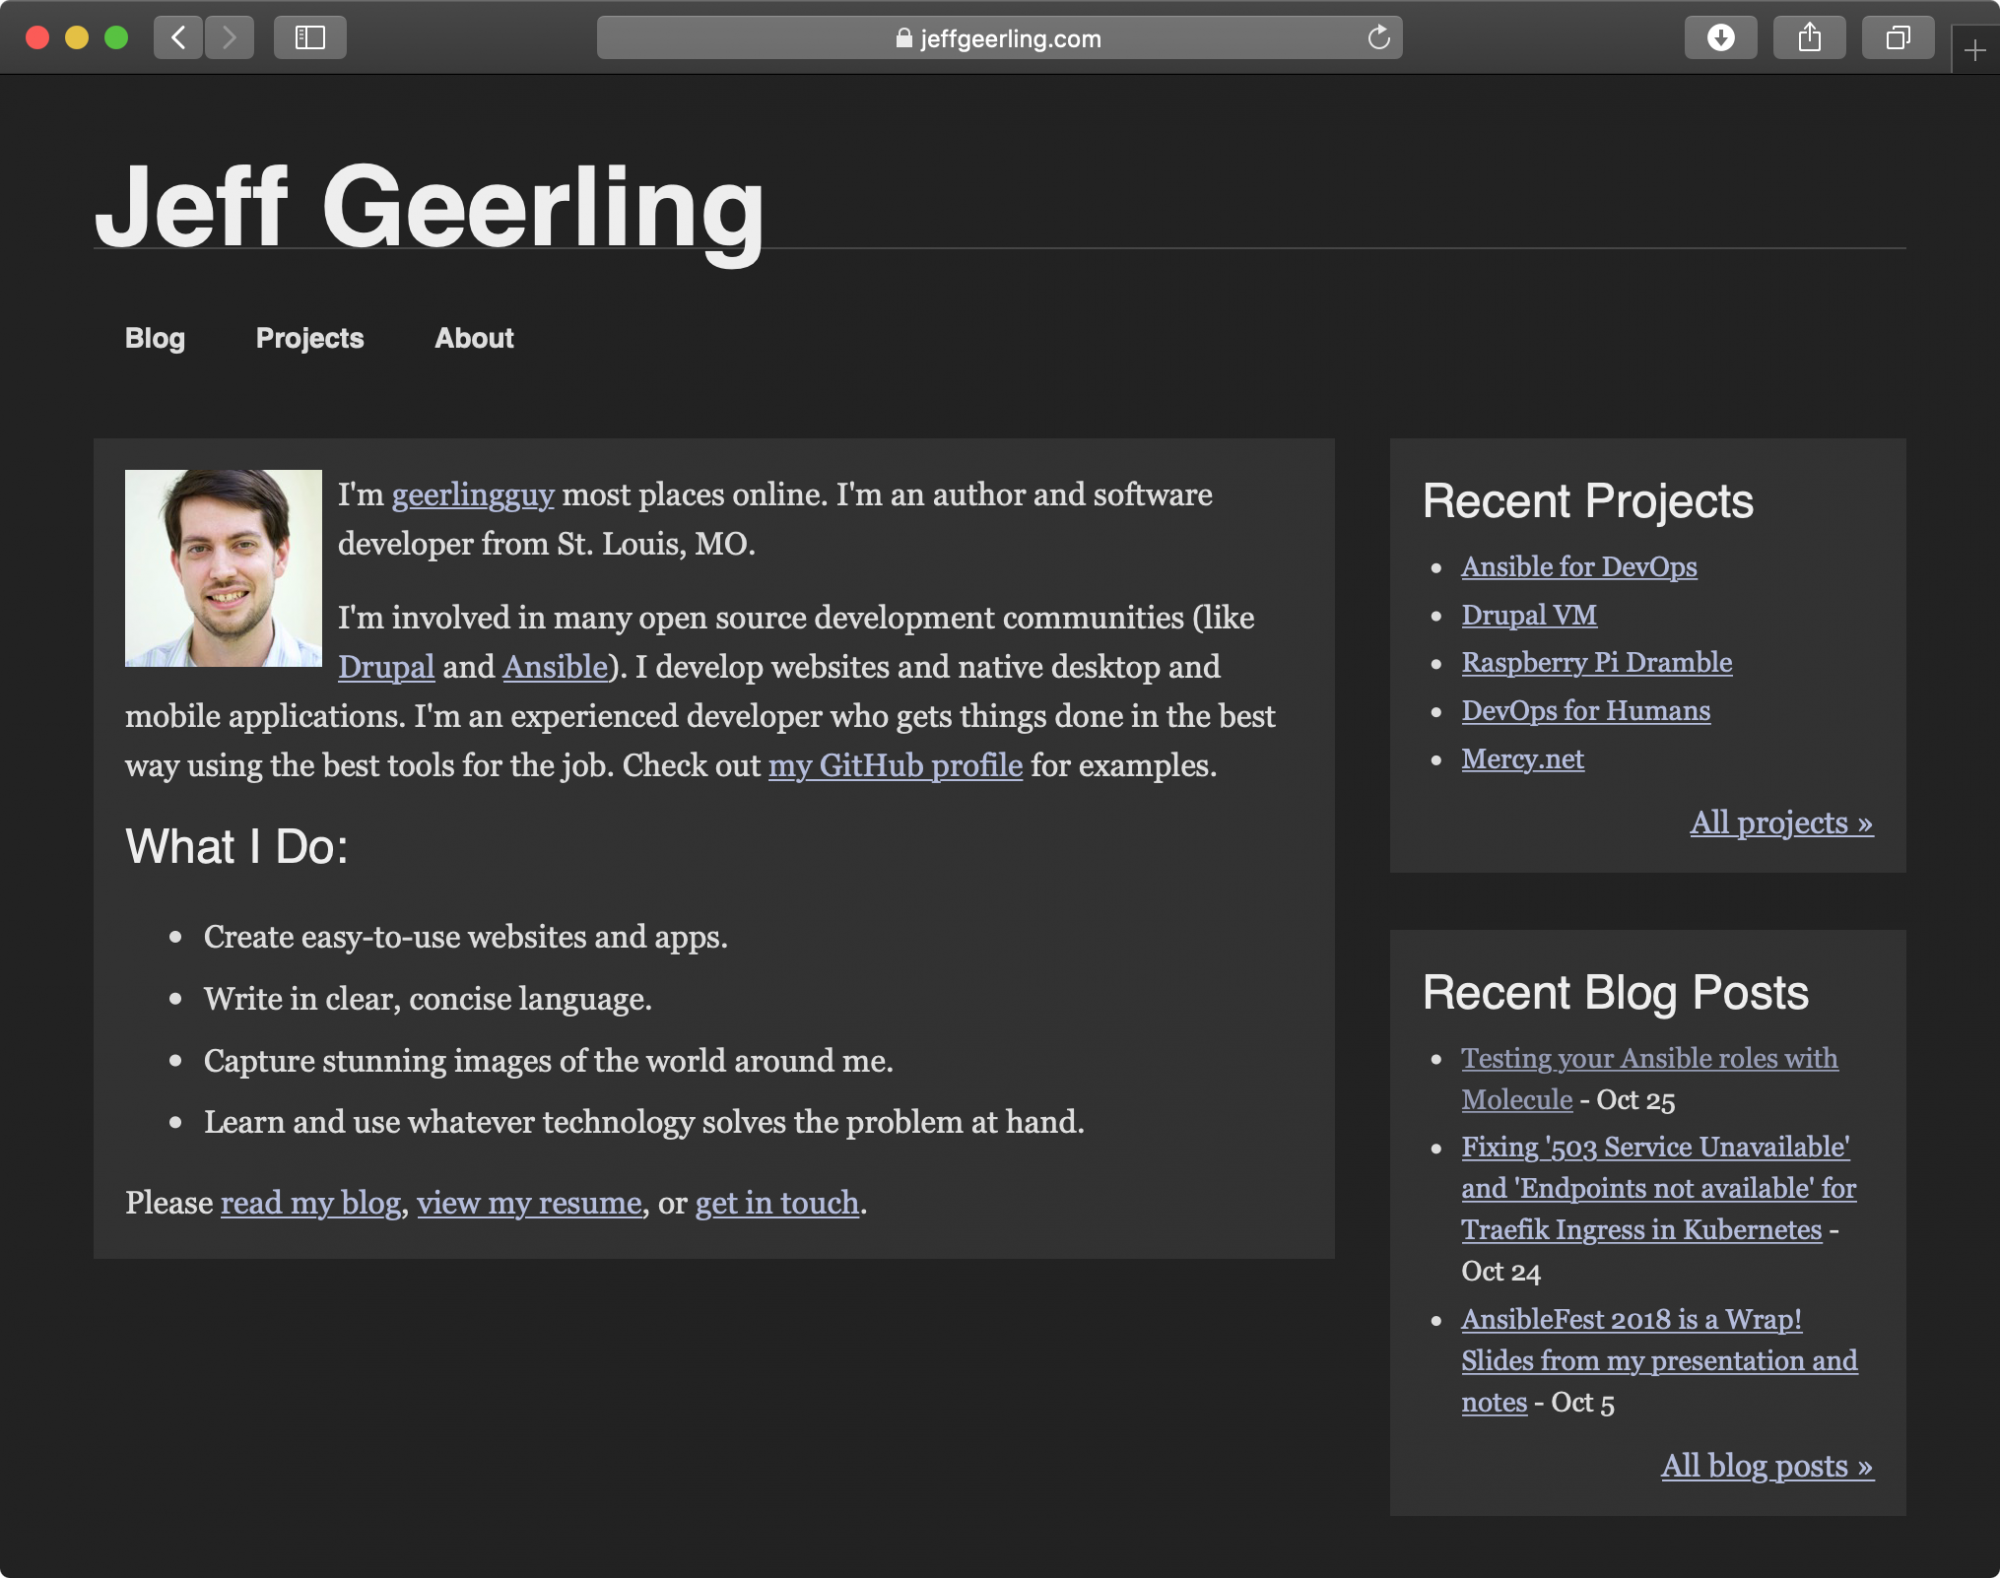 Jeff Geerling.com in dark mode on macOS Mojave